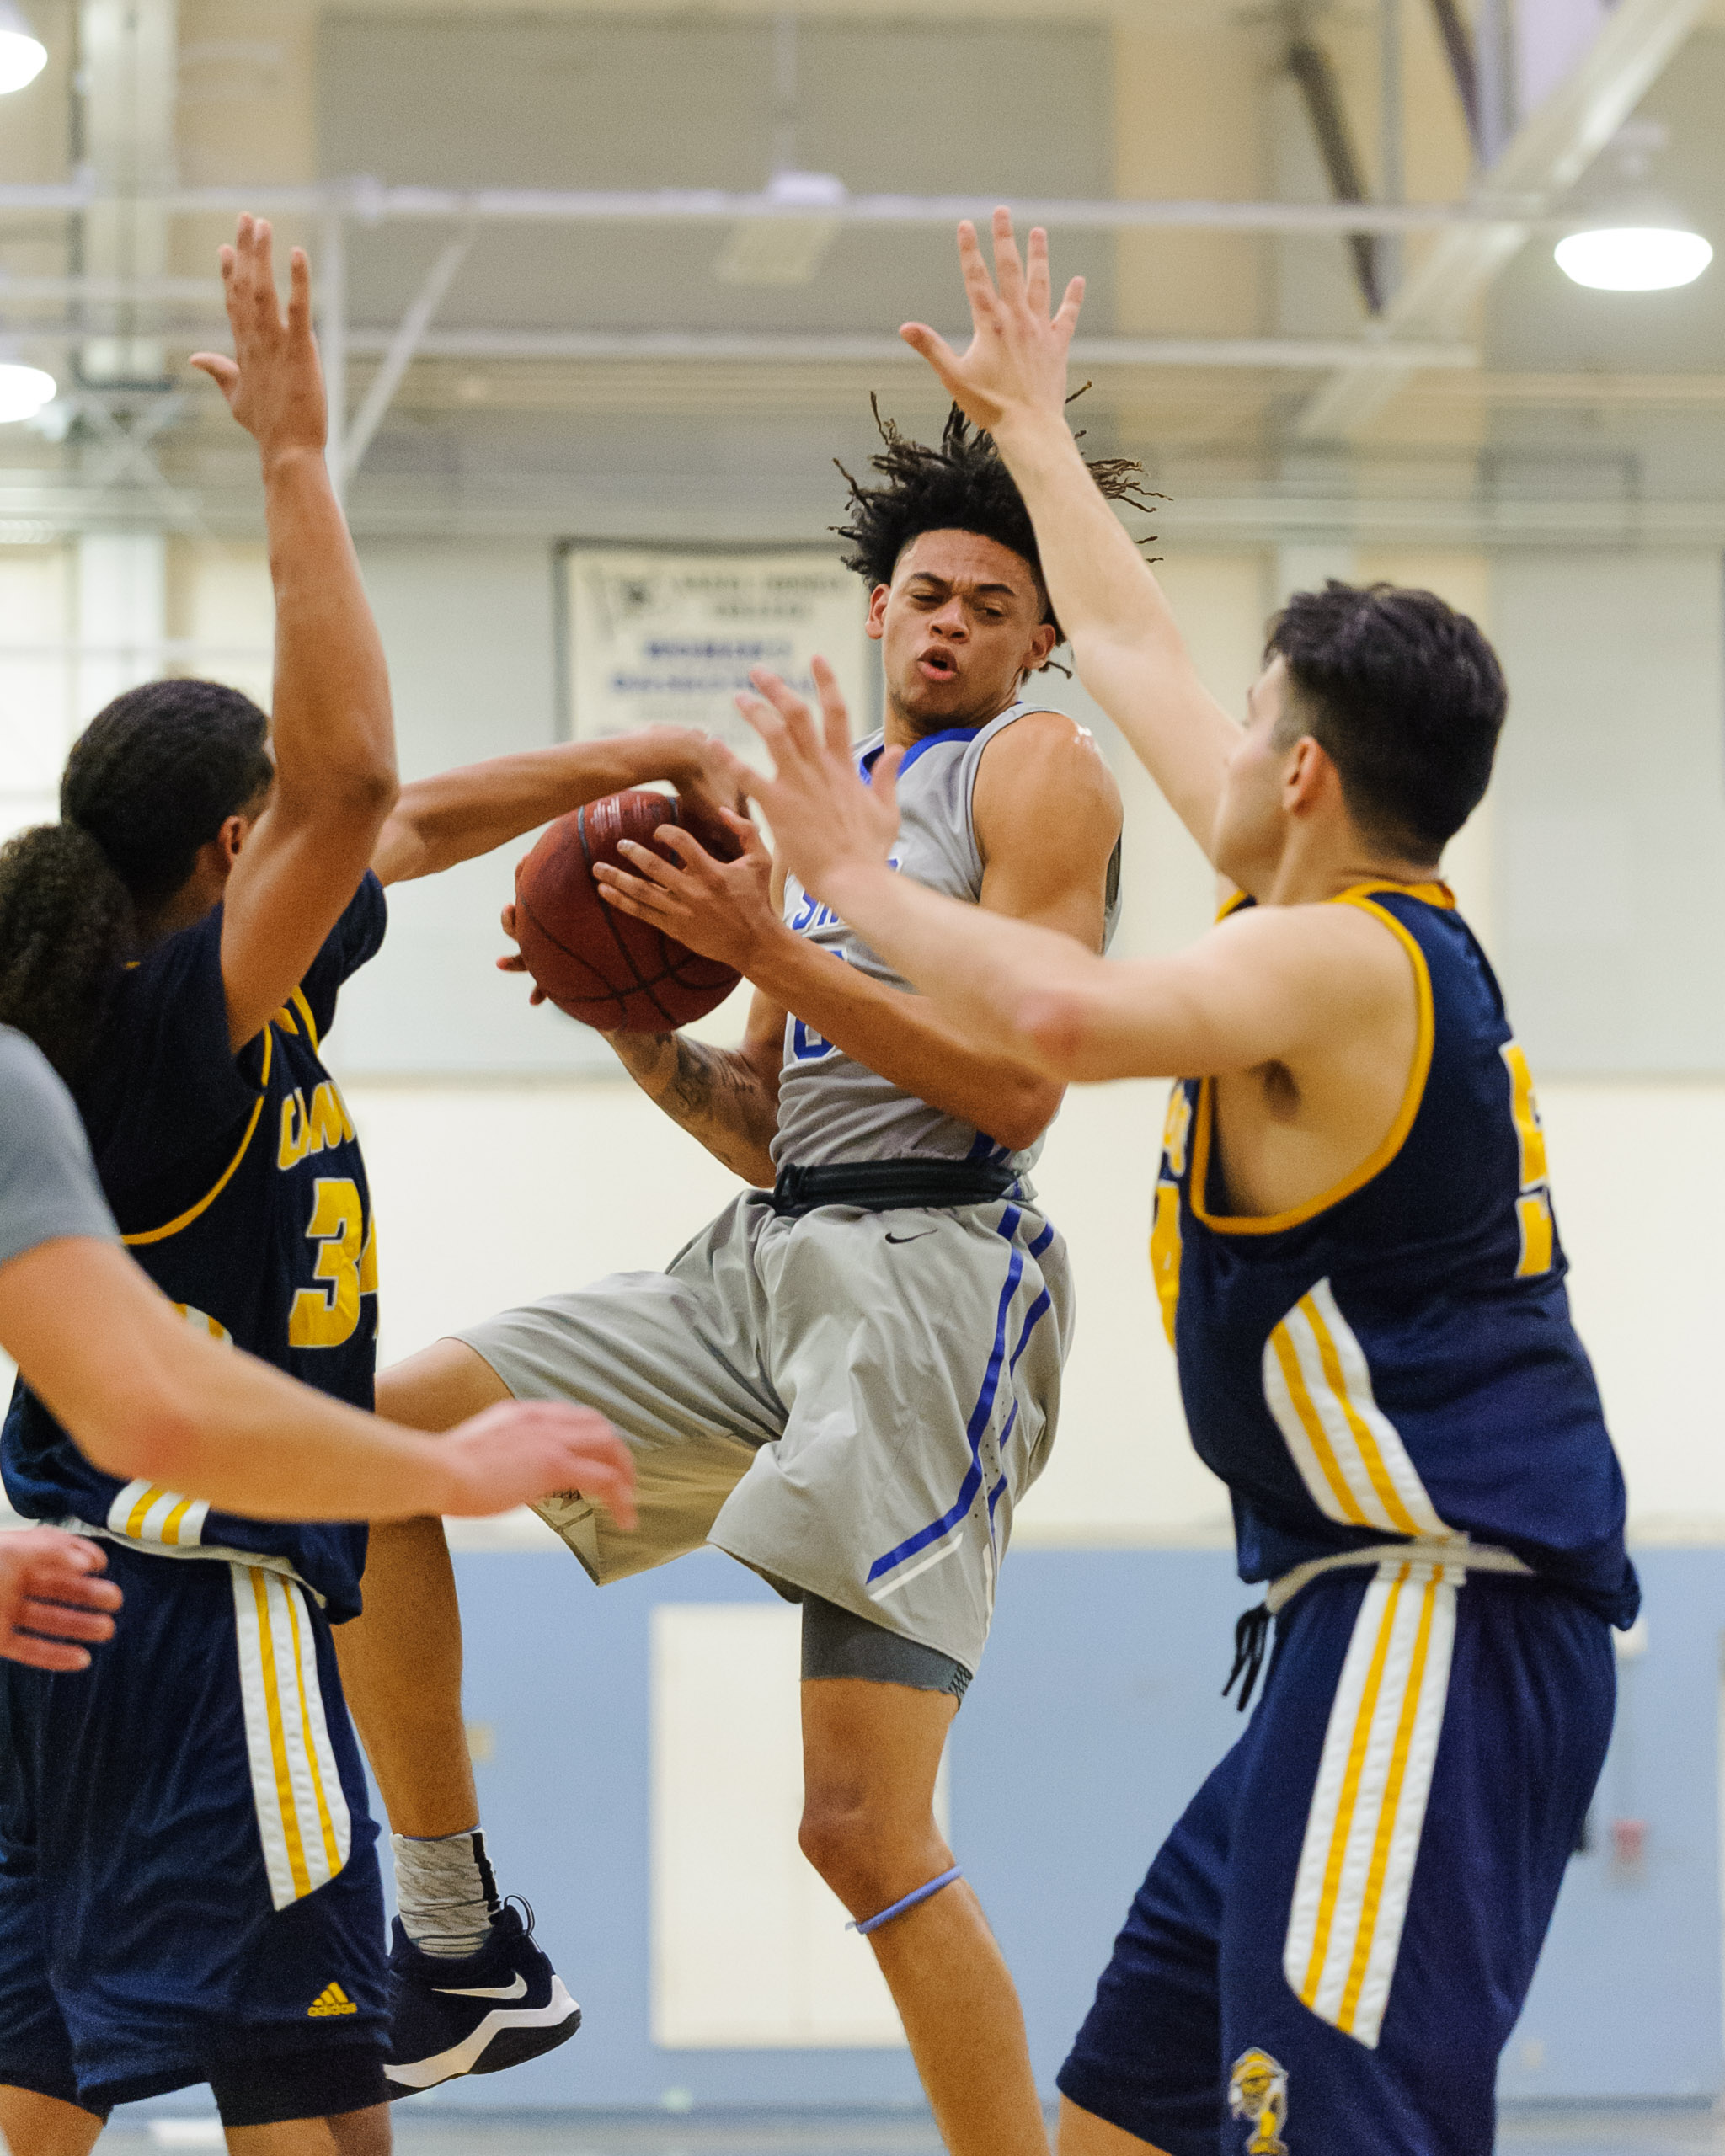 Forward Michael Fry (0) of Santa Monica College grabs an offensive rebound in traffic. The Santa Monica College Corsairs lose the game 74-72 to the College of the Canyons Cougars. The game was held at the SMC Pavilion at the Santa Monica College Main Campus in Santa Monica, Calif.. February 10, 2018. (Photo by: Justin Han/Corsair Staff)